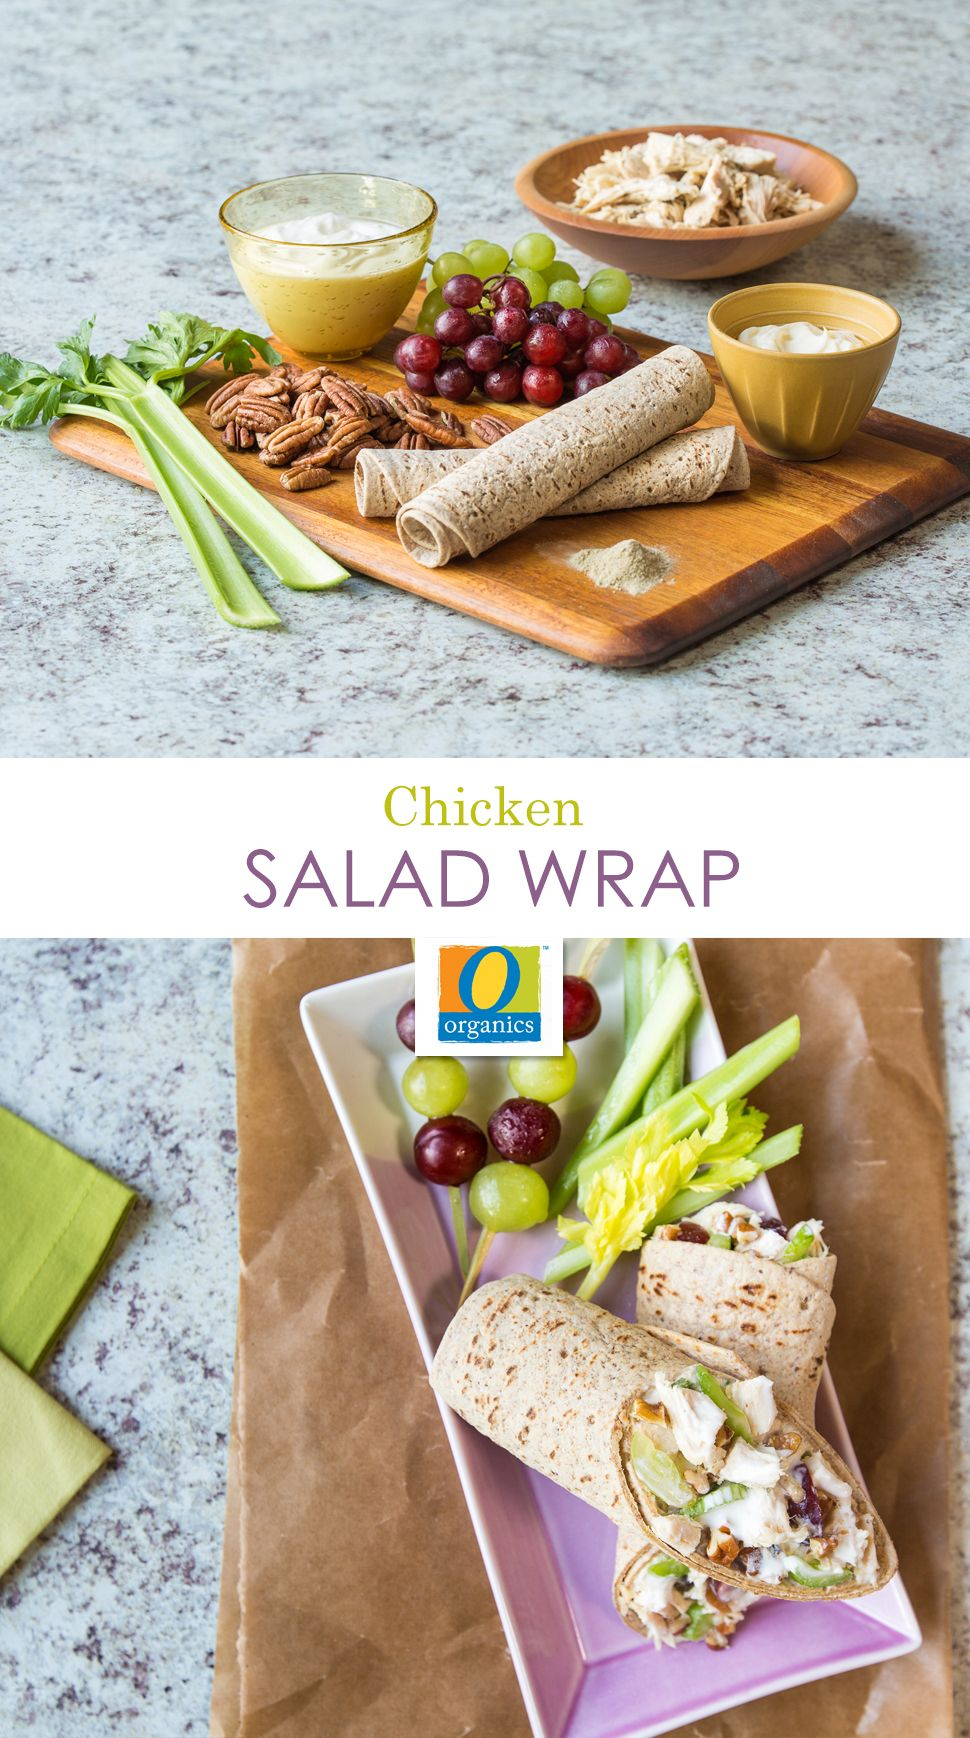 Chicken Salad Wraps – If you're looking for an easy and healthy lunchbox option for your kids, try this simple Chicken Salad Wrap recipe. It's one of many recipes we created to make the most of your week's tender and juicy Crockpot chicken meal prep.